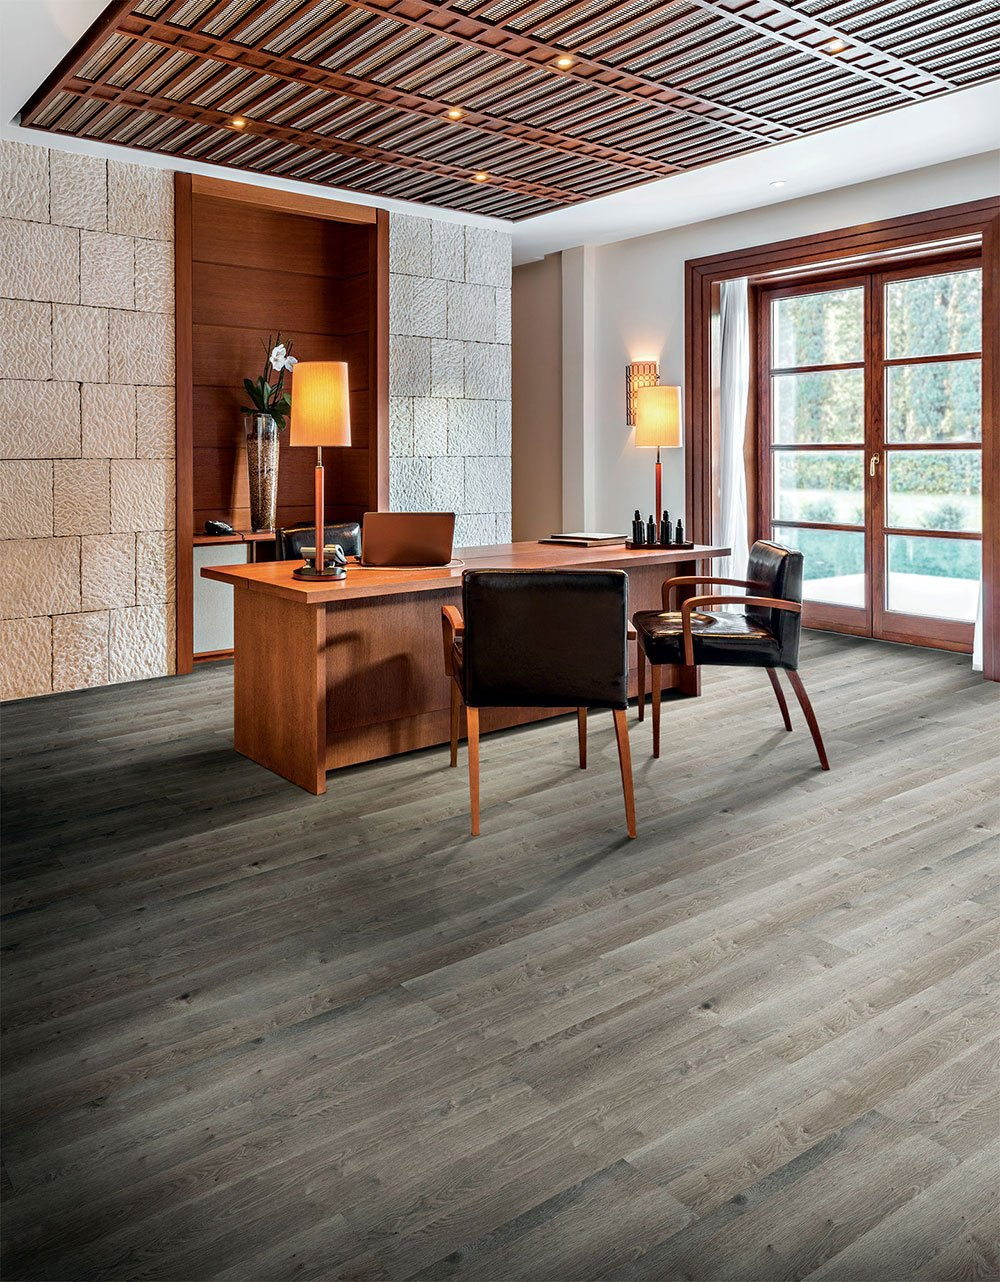 Made to look like the real thing, vinyl raw wood floors are an excellent flooring alternative for any office looking to rethink its interior space design.